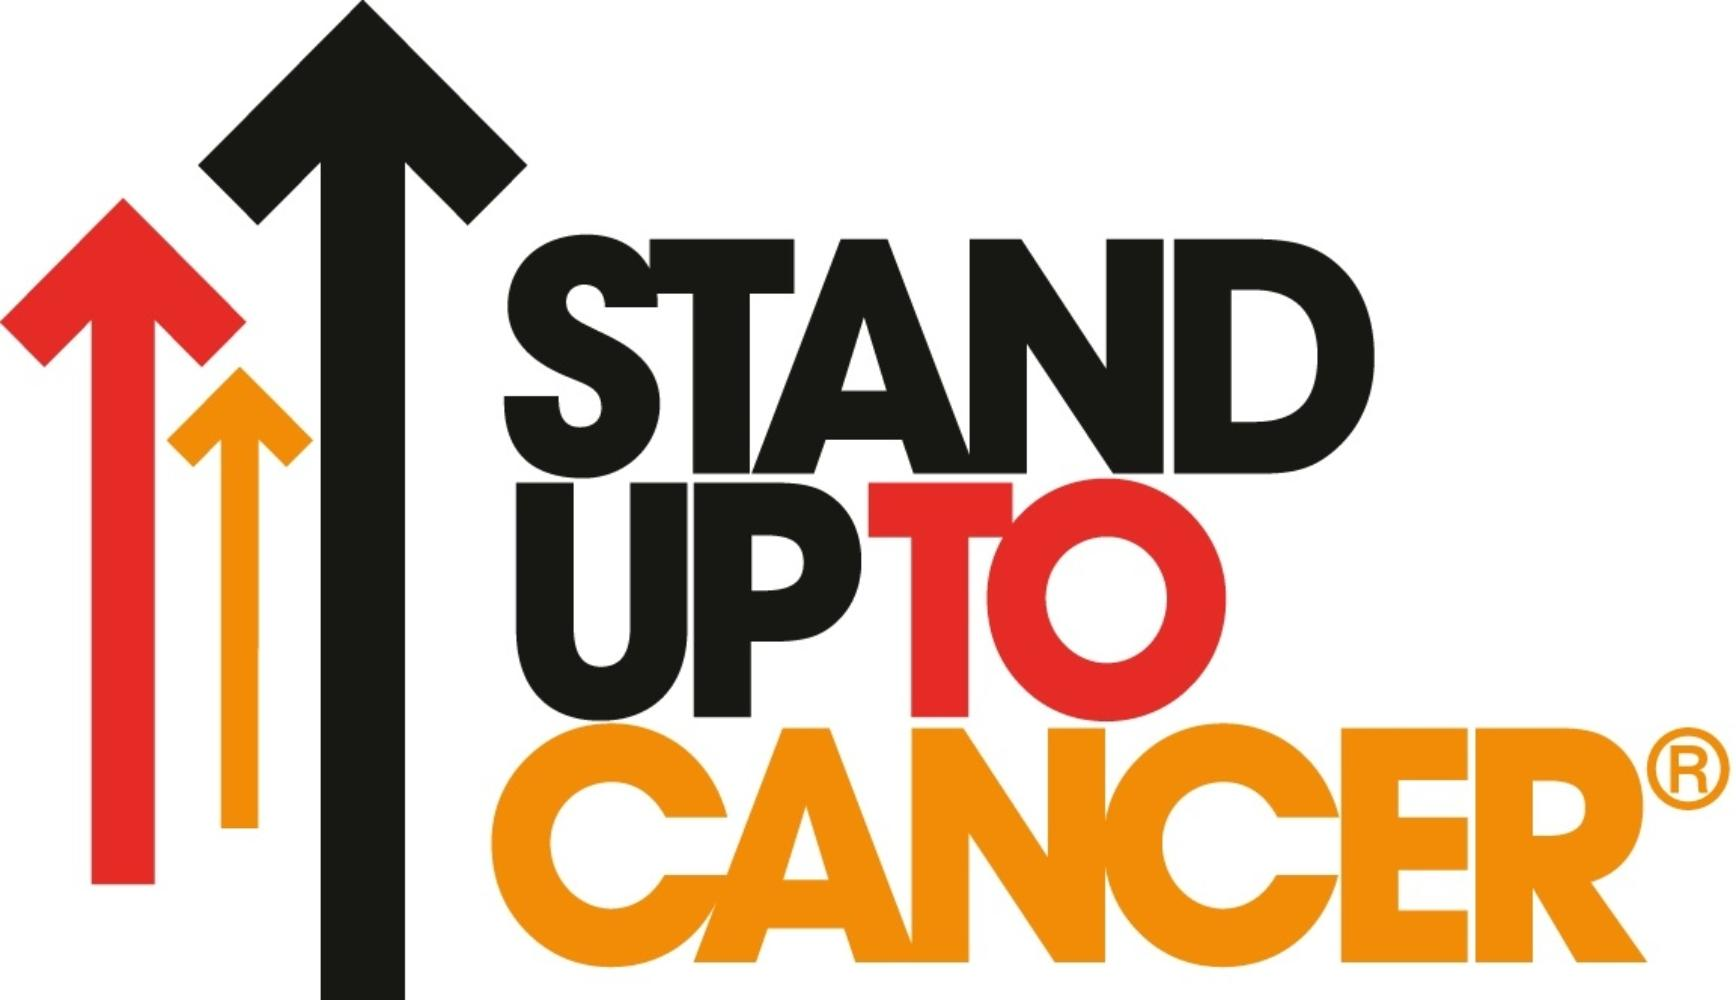 Stand up to cancer charity logo